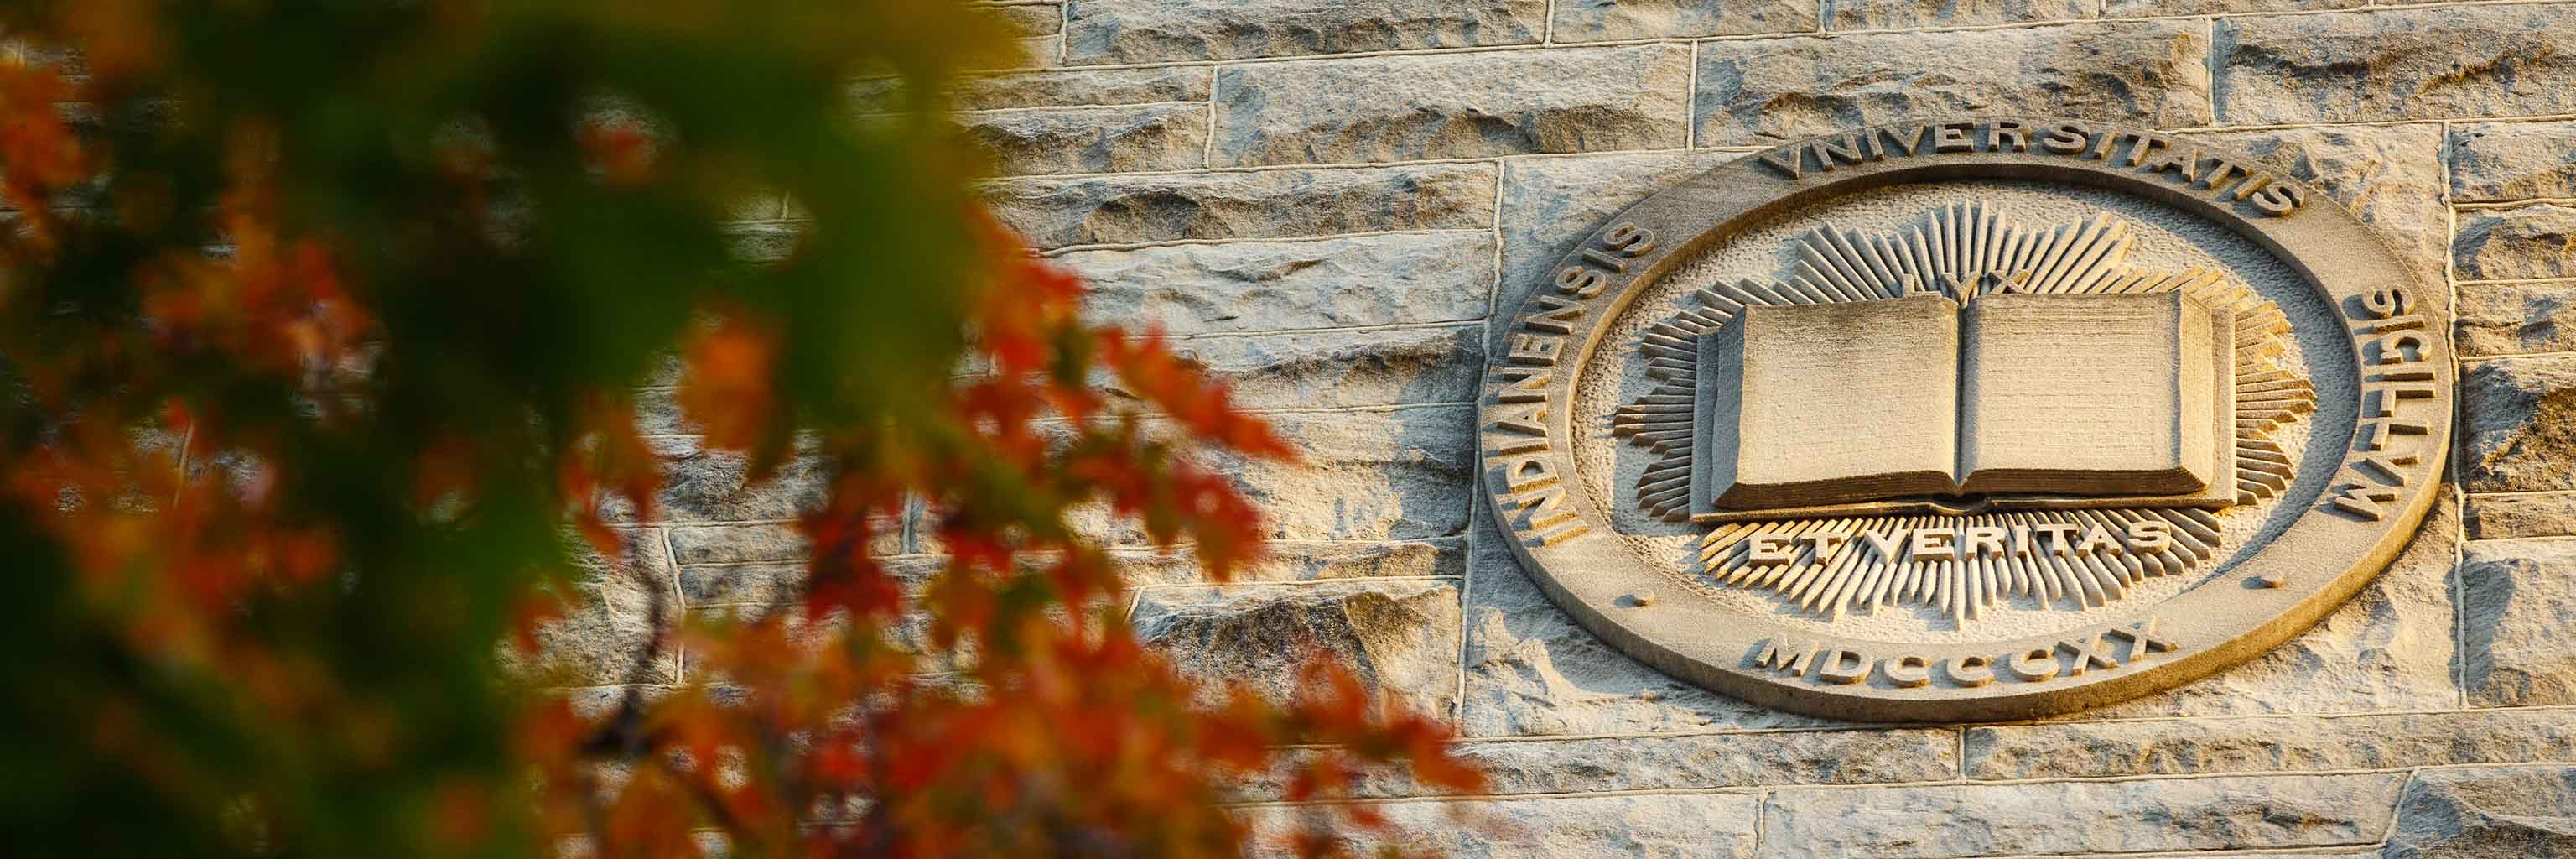 Indiana University seal carved into limestone